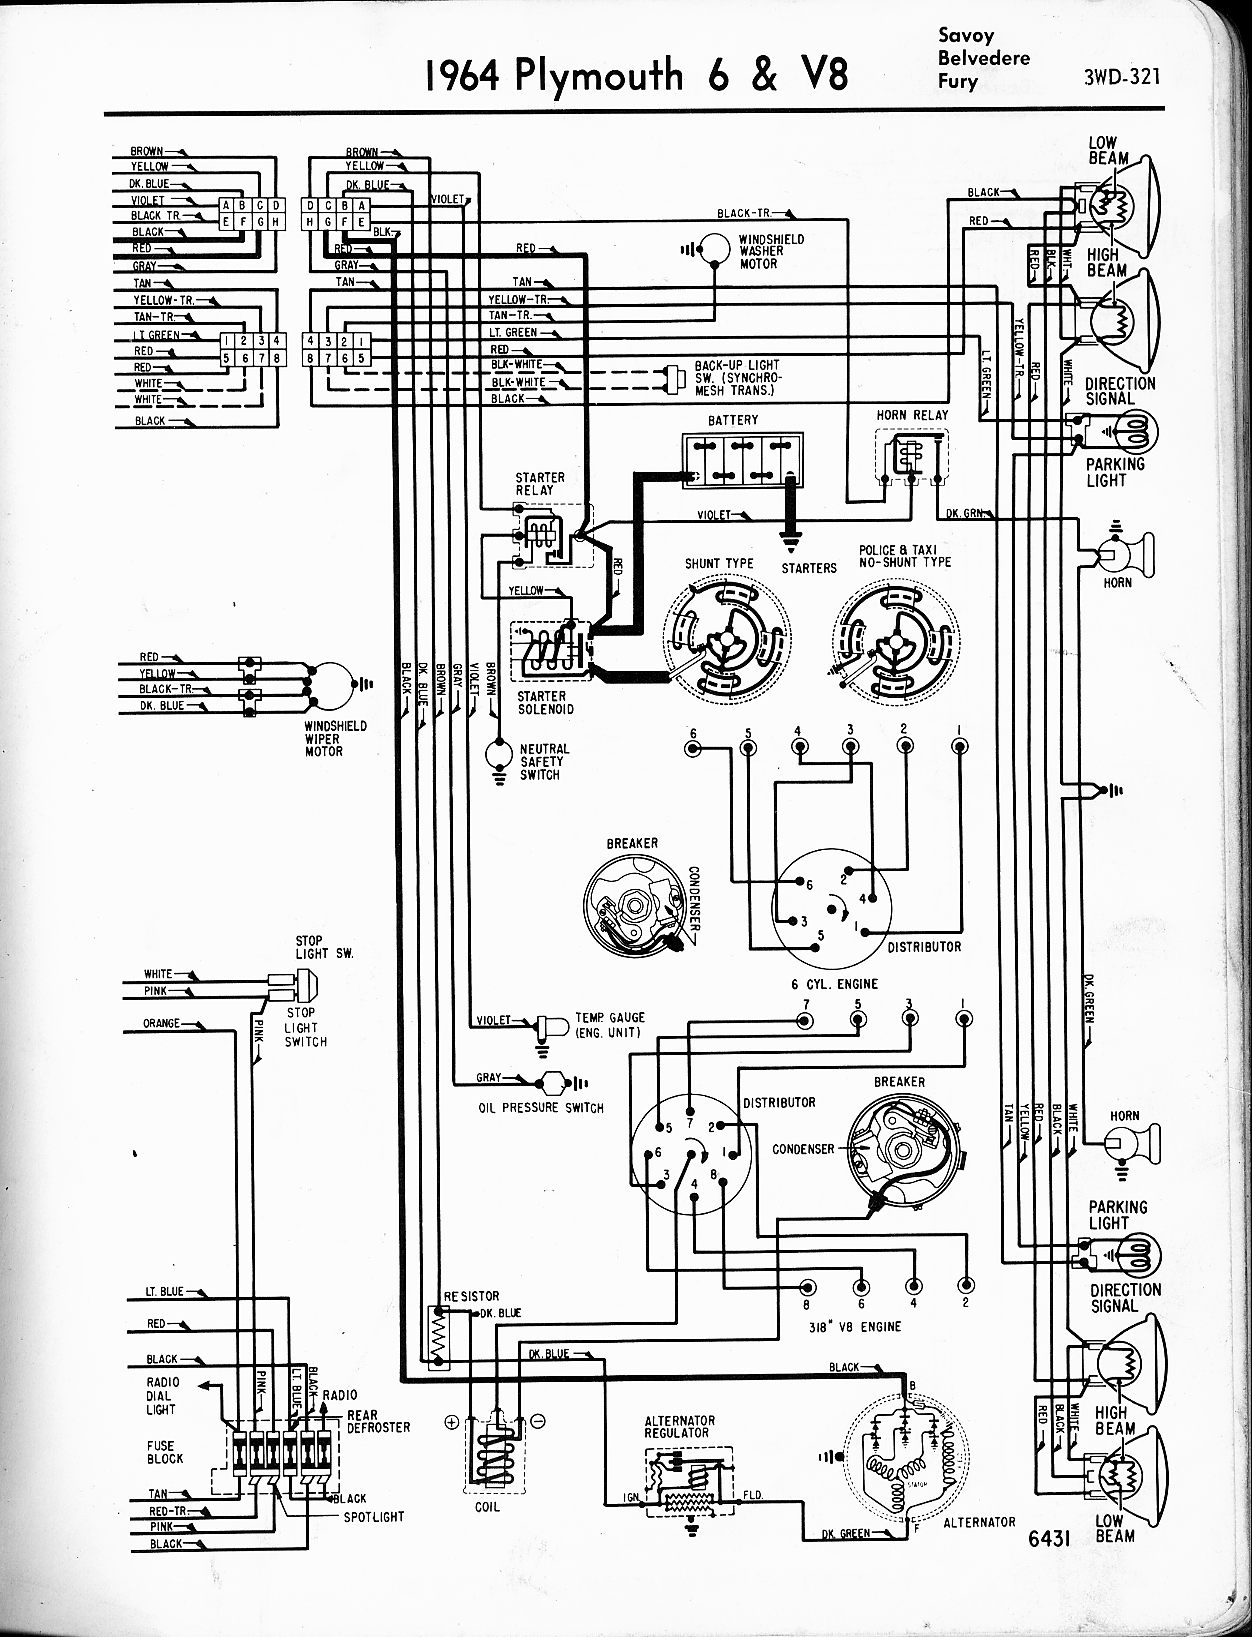 63 Plymouth Wiring Diagram, 63, Free Engine Image For User